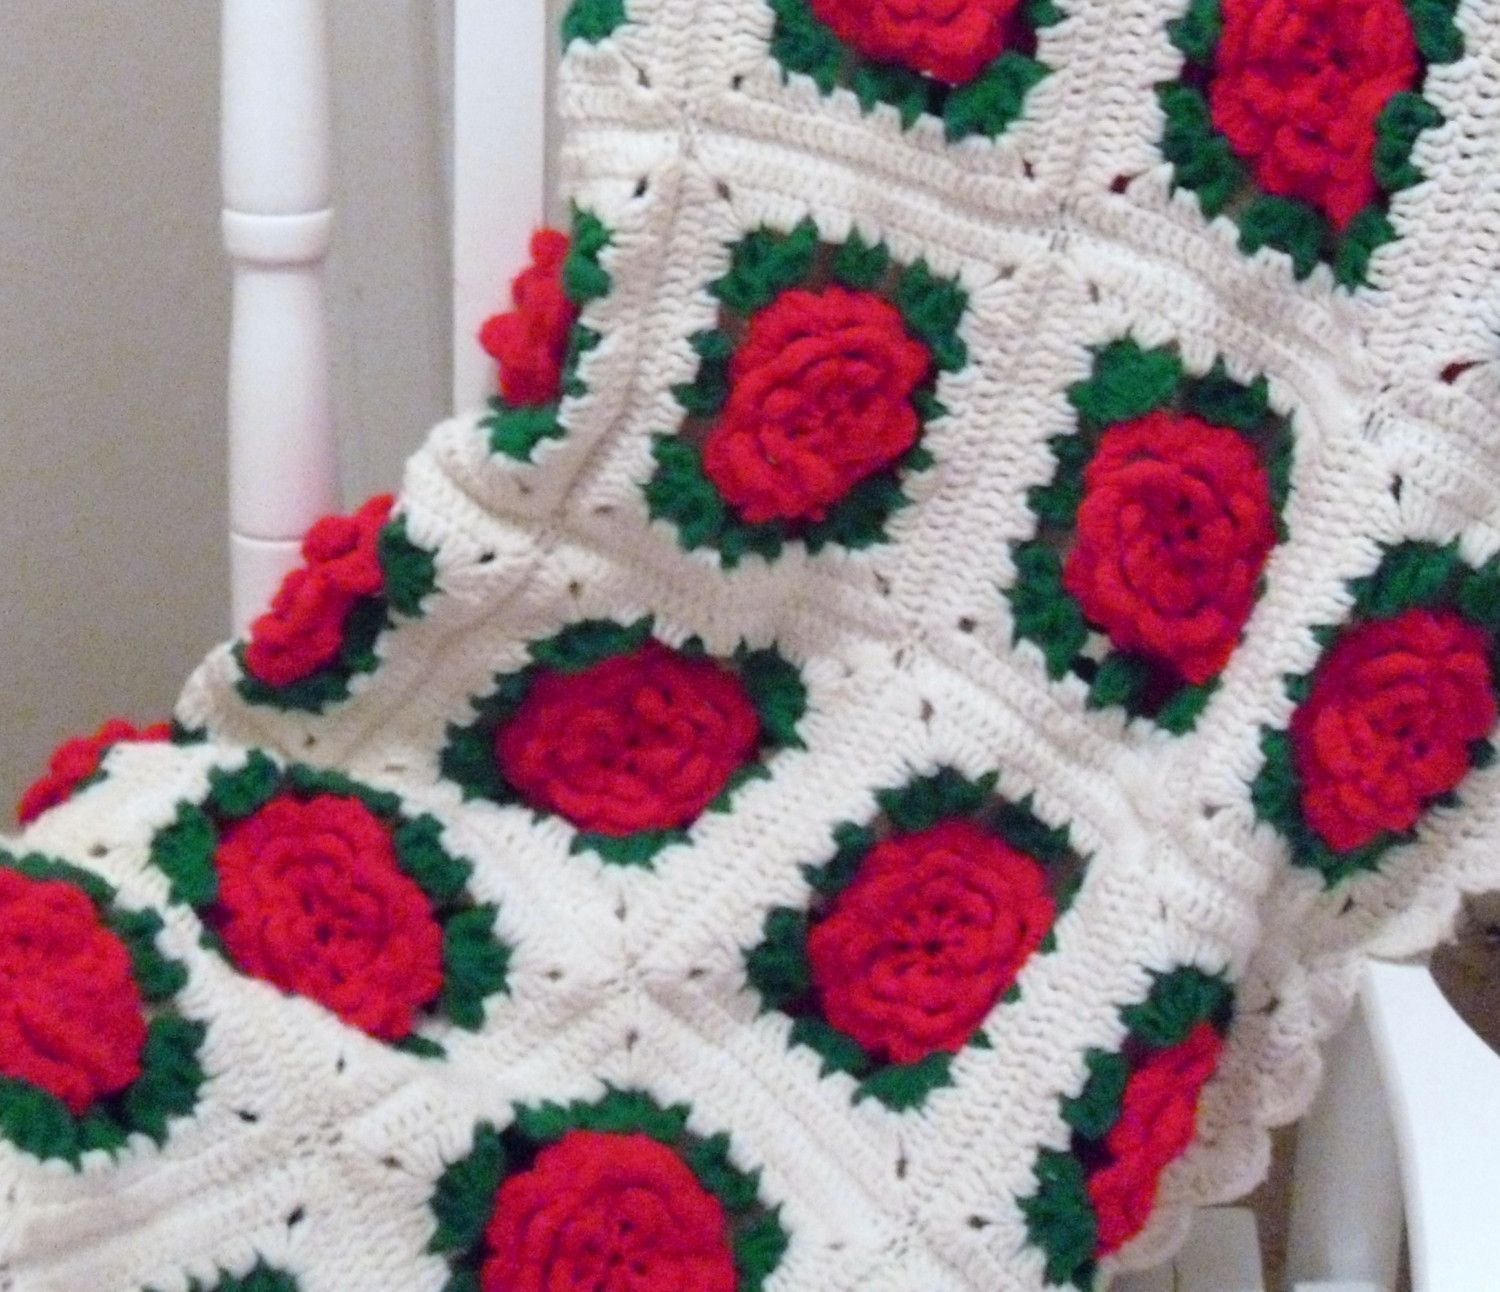 Free crochet afghan patterns irish crochet afghan crochet for free crochet afghan patterns irish crochet afghan crochet for beginners bankloansurffo Gallery